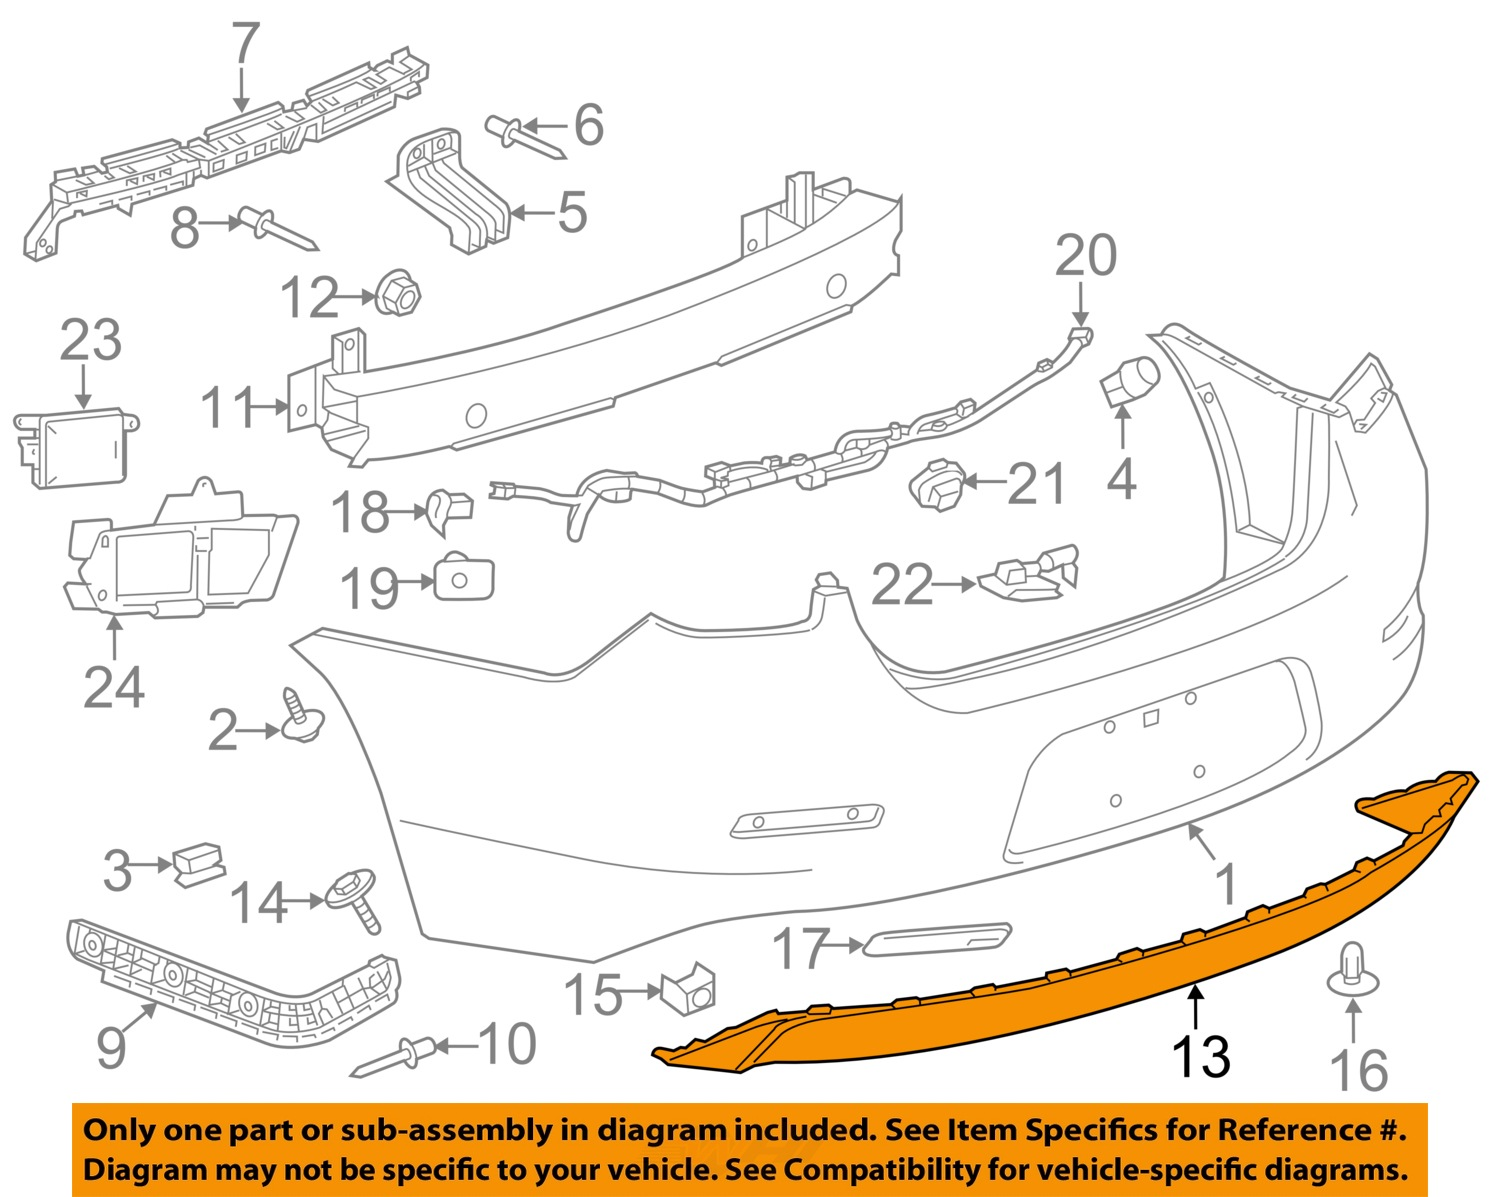 Saturn Ion Bumper Diagram Great Design Of Wiring Parts Security System 2009 Chevrolet Cobalt Spare Catalogs Engine